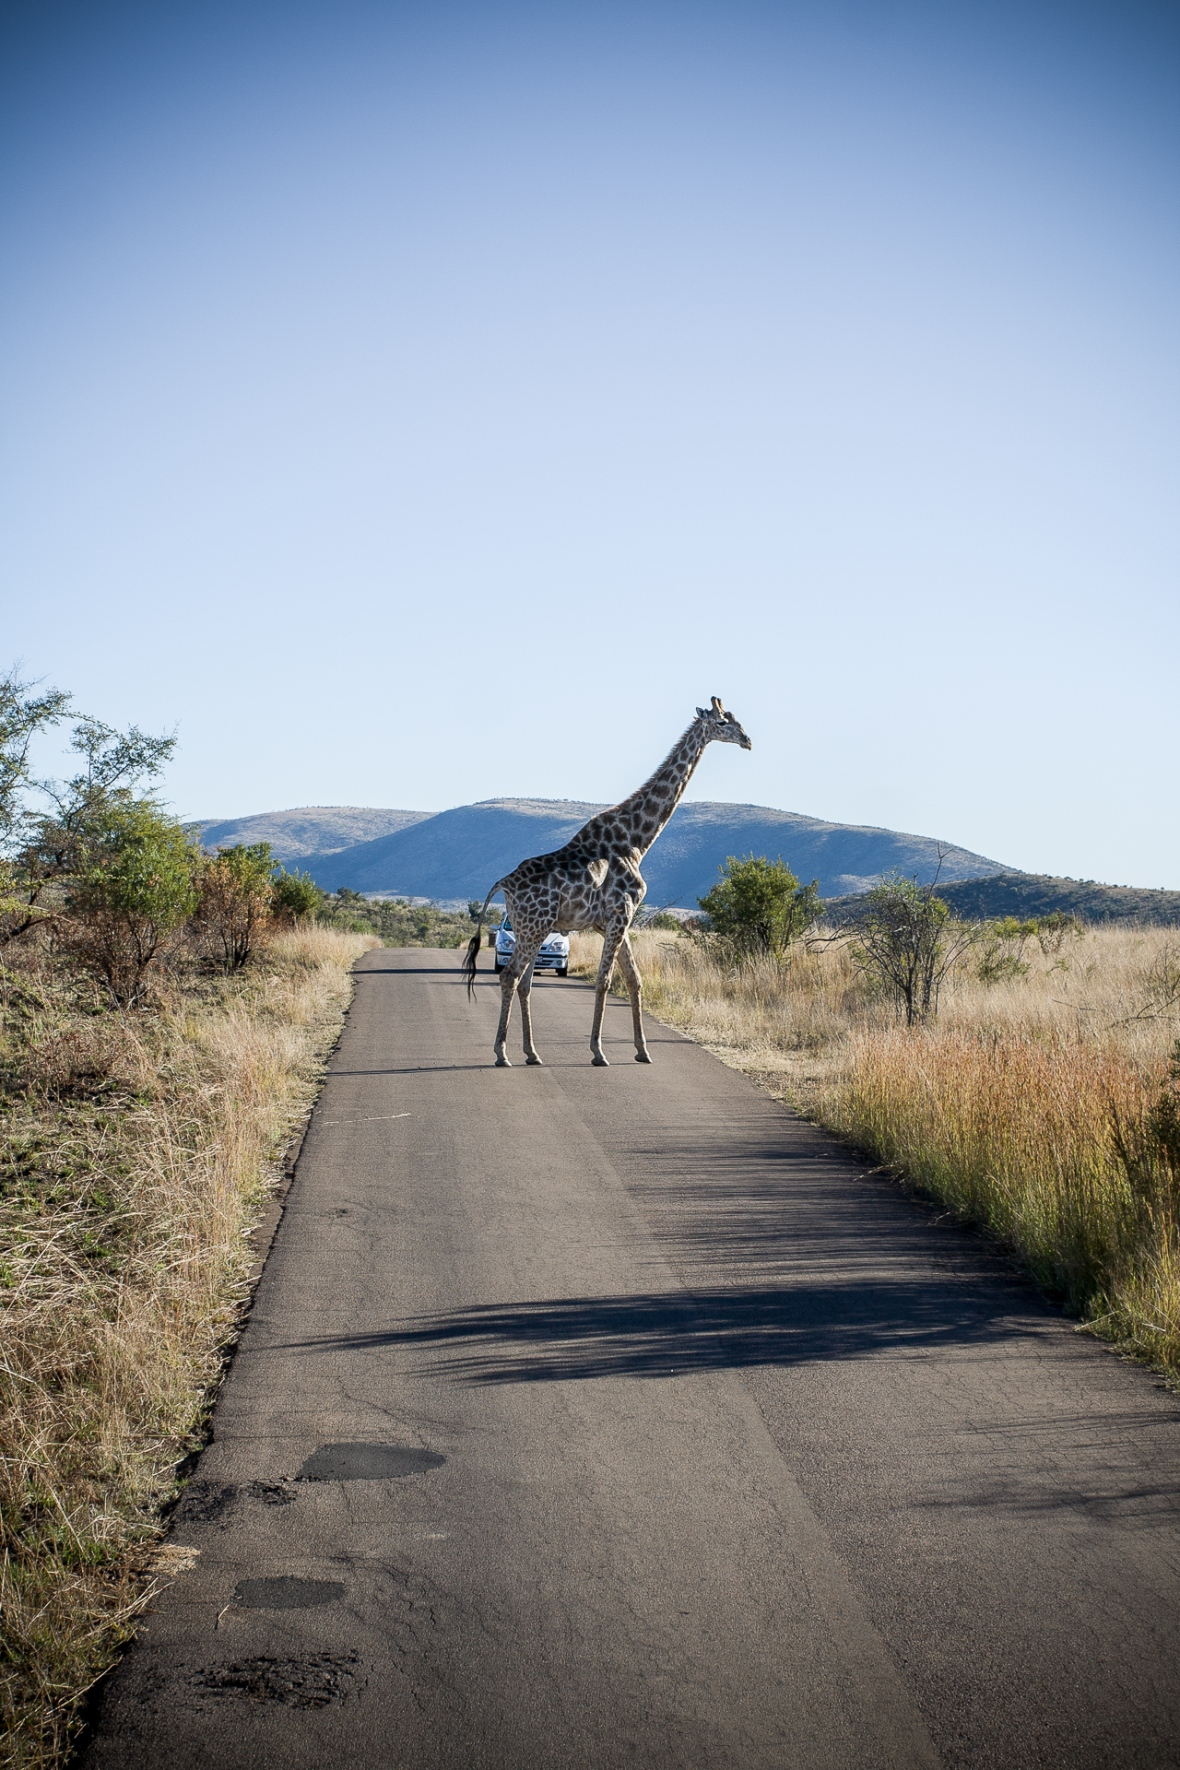 Giraffe crossing a road in a African Game Reserve